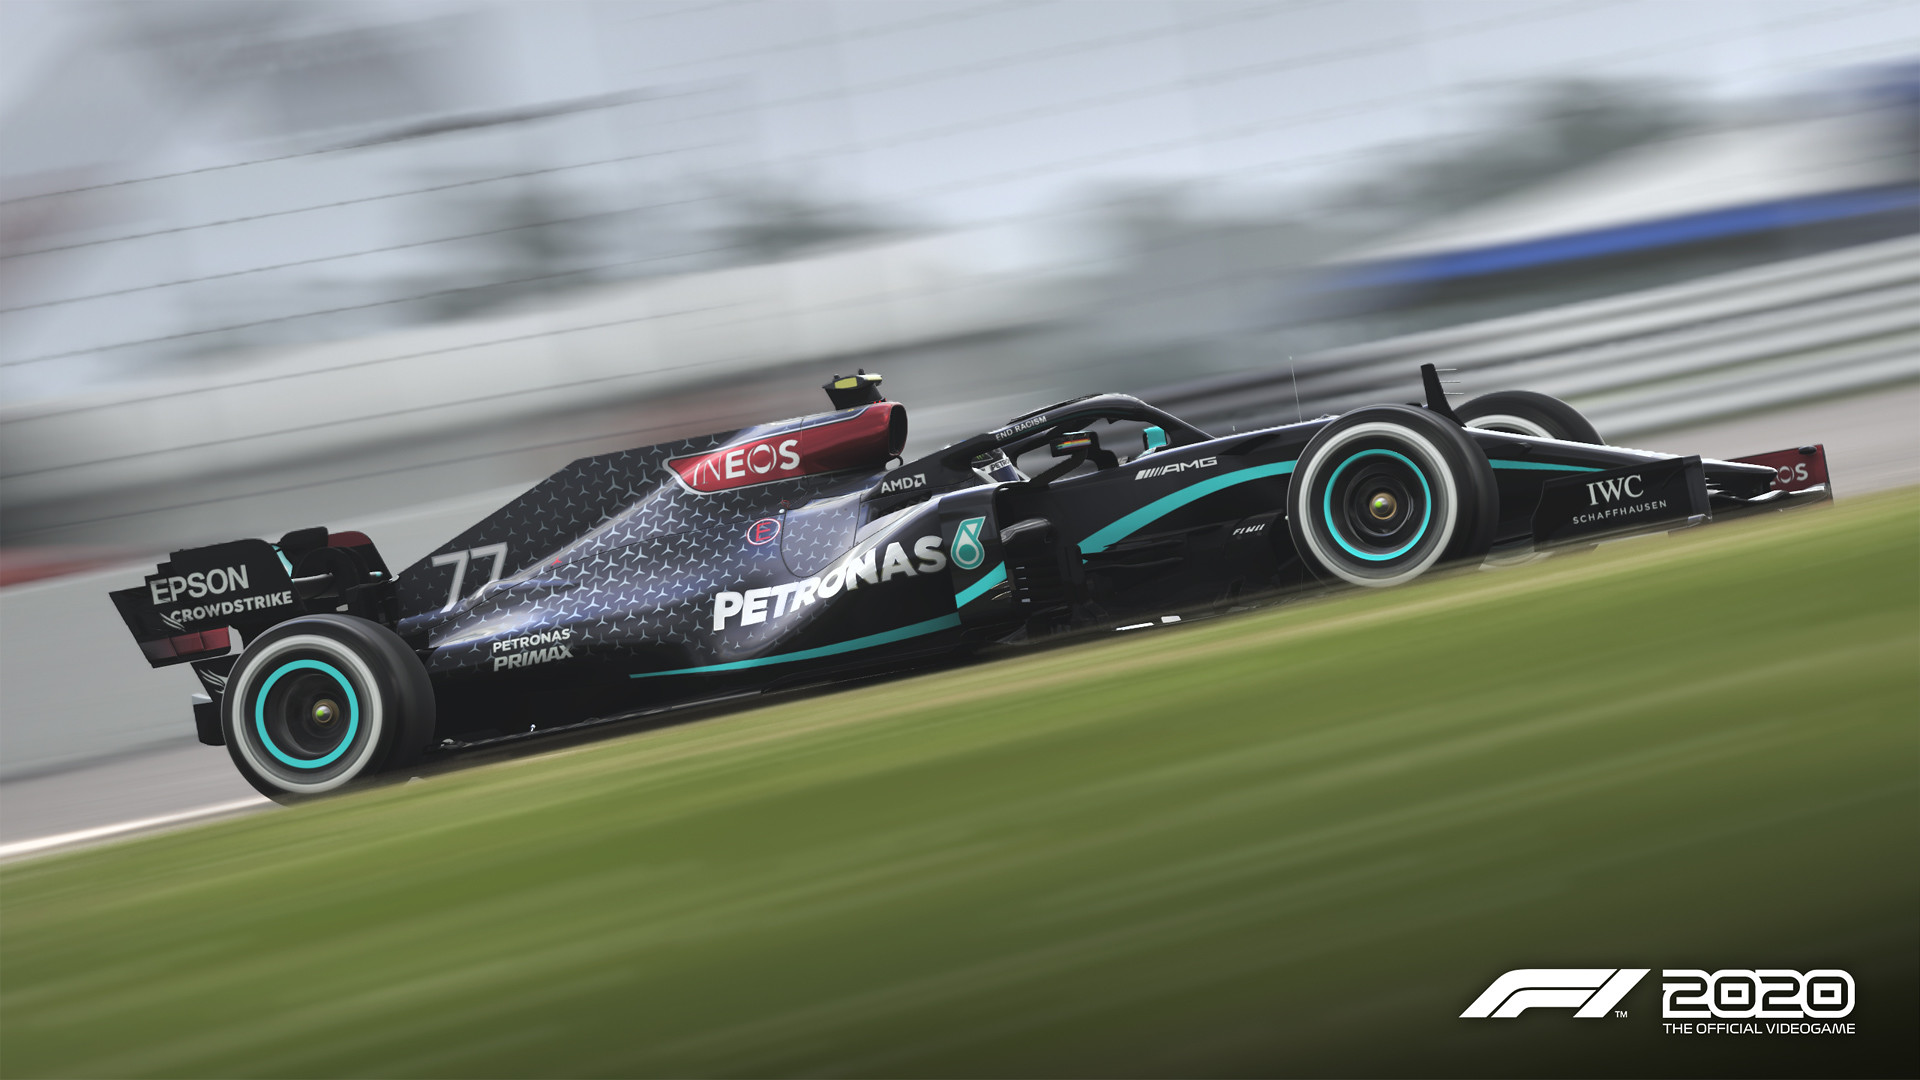 F1 2020 Game F1 2020 - Update Patch 1.06 Deployed - Black Mercedes AMG 3